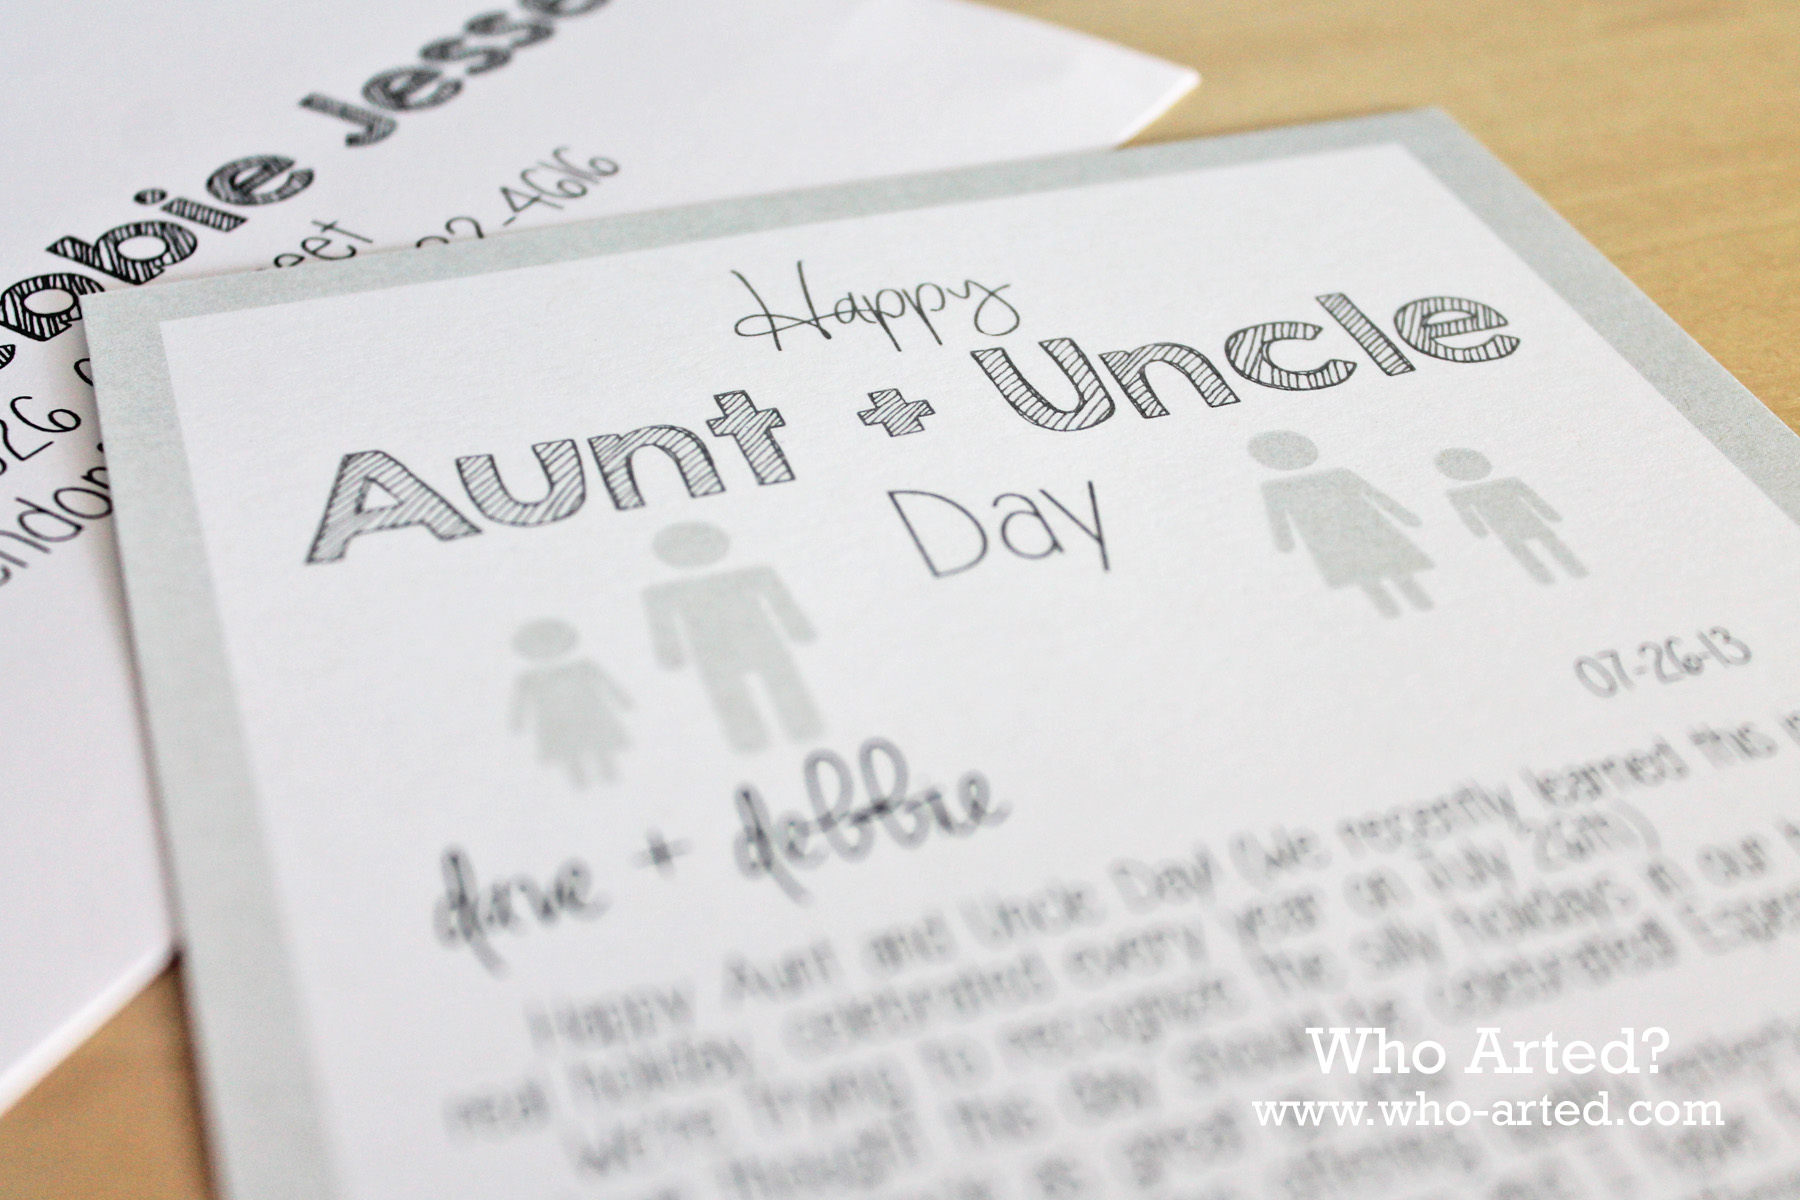 aunt and uncle day cards archives who arted. Black Bedroom Furniture Sets. Home Design Ideas